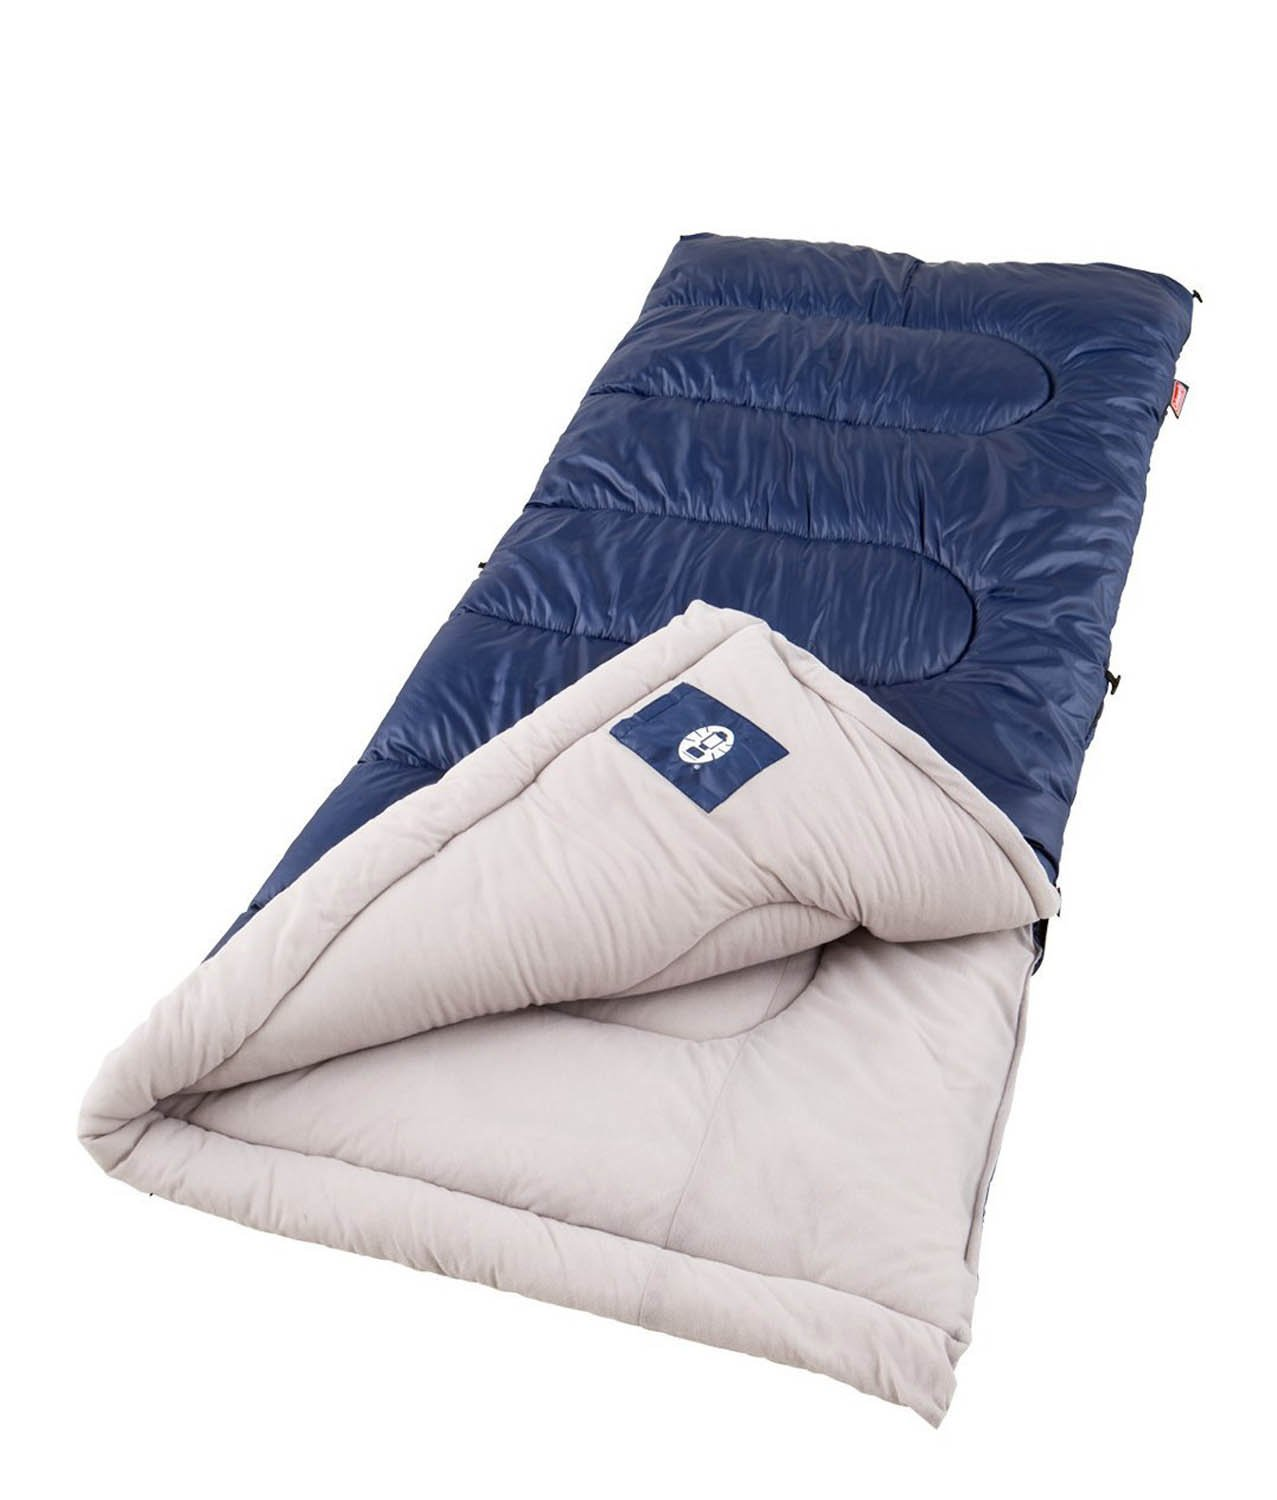 An image related to Coleman Brazos Men's 30 Degree Polyester Sleeping Bag